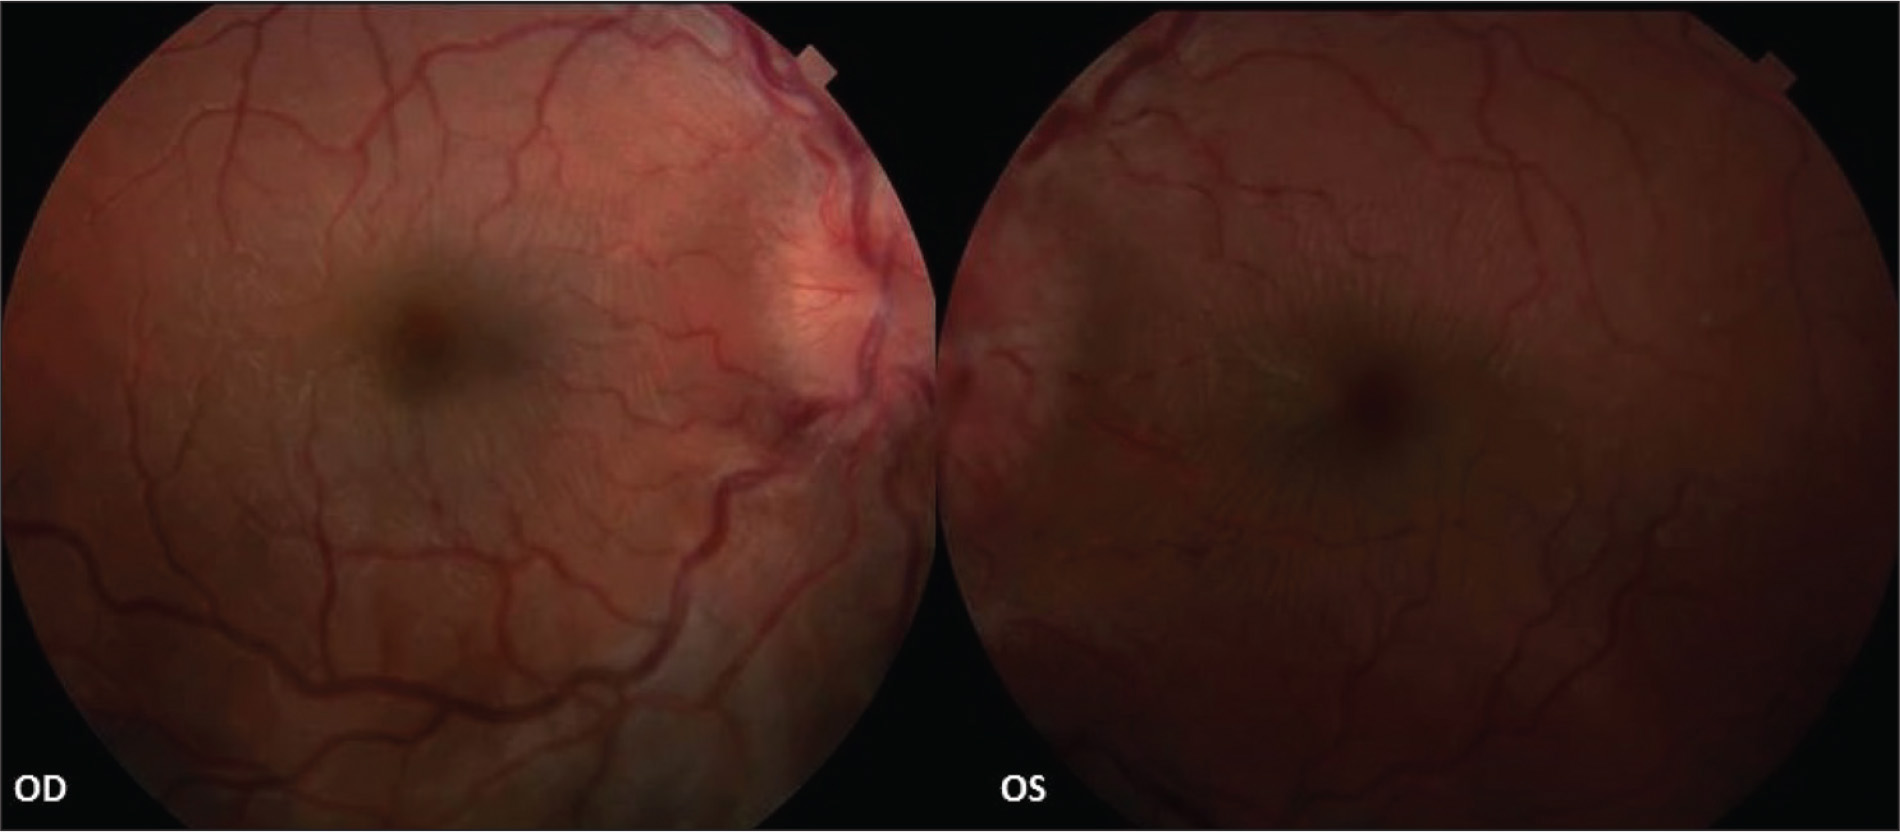 Fundus photographs showing optic disc edema and macular striae bilaterally. OD = right eye; OS = left eye